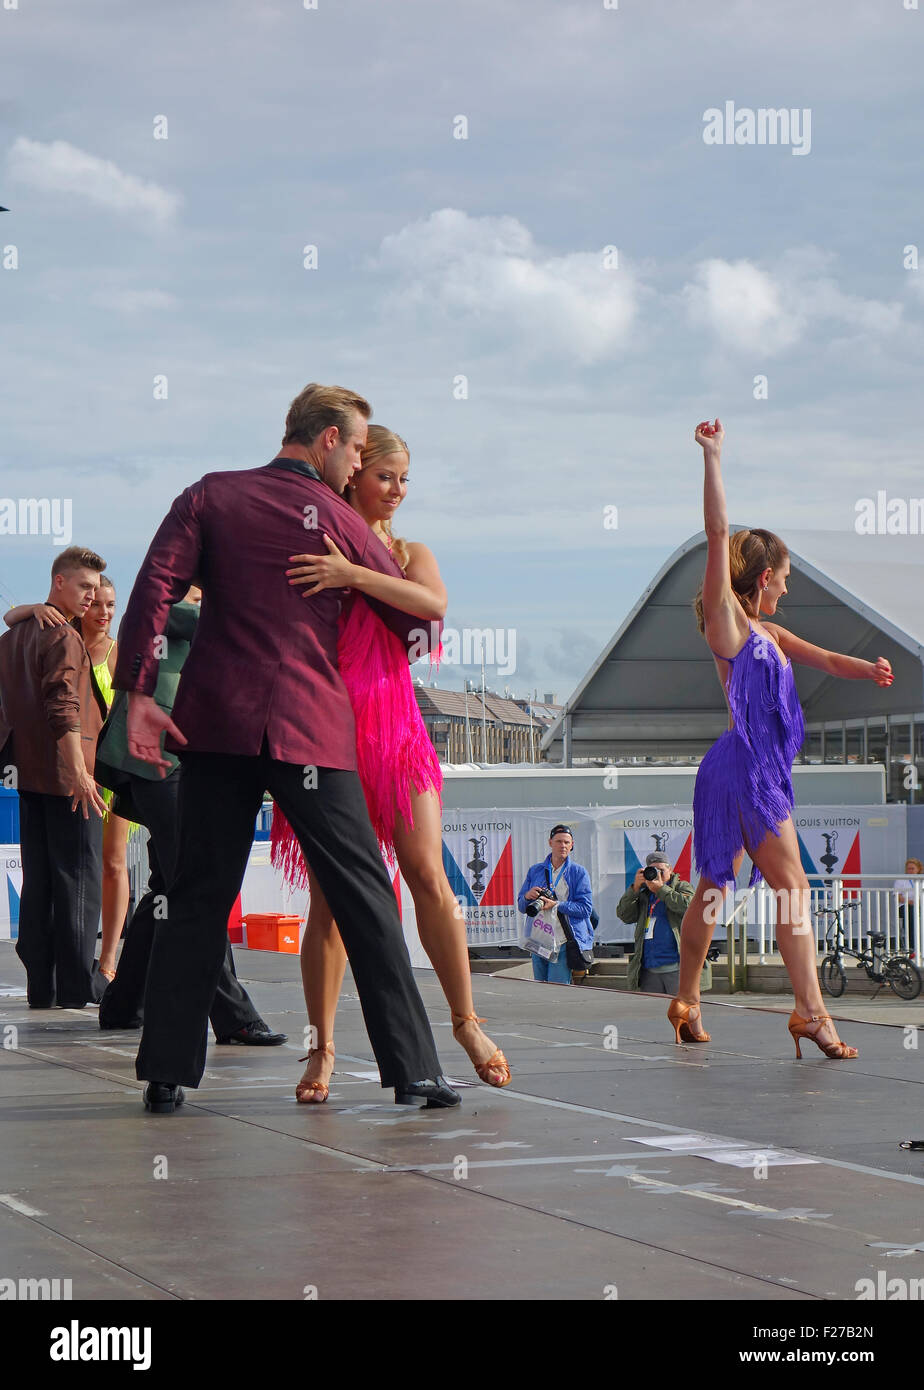 Dancing couples perform on stage. - Stock Image